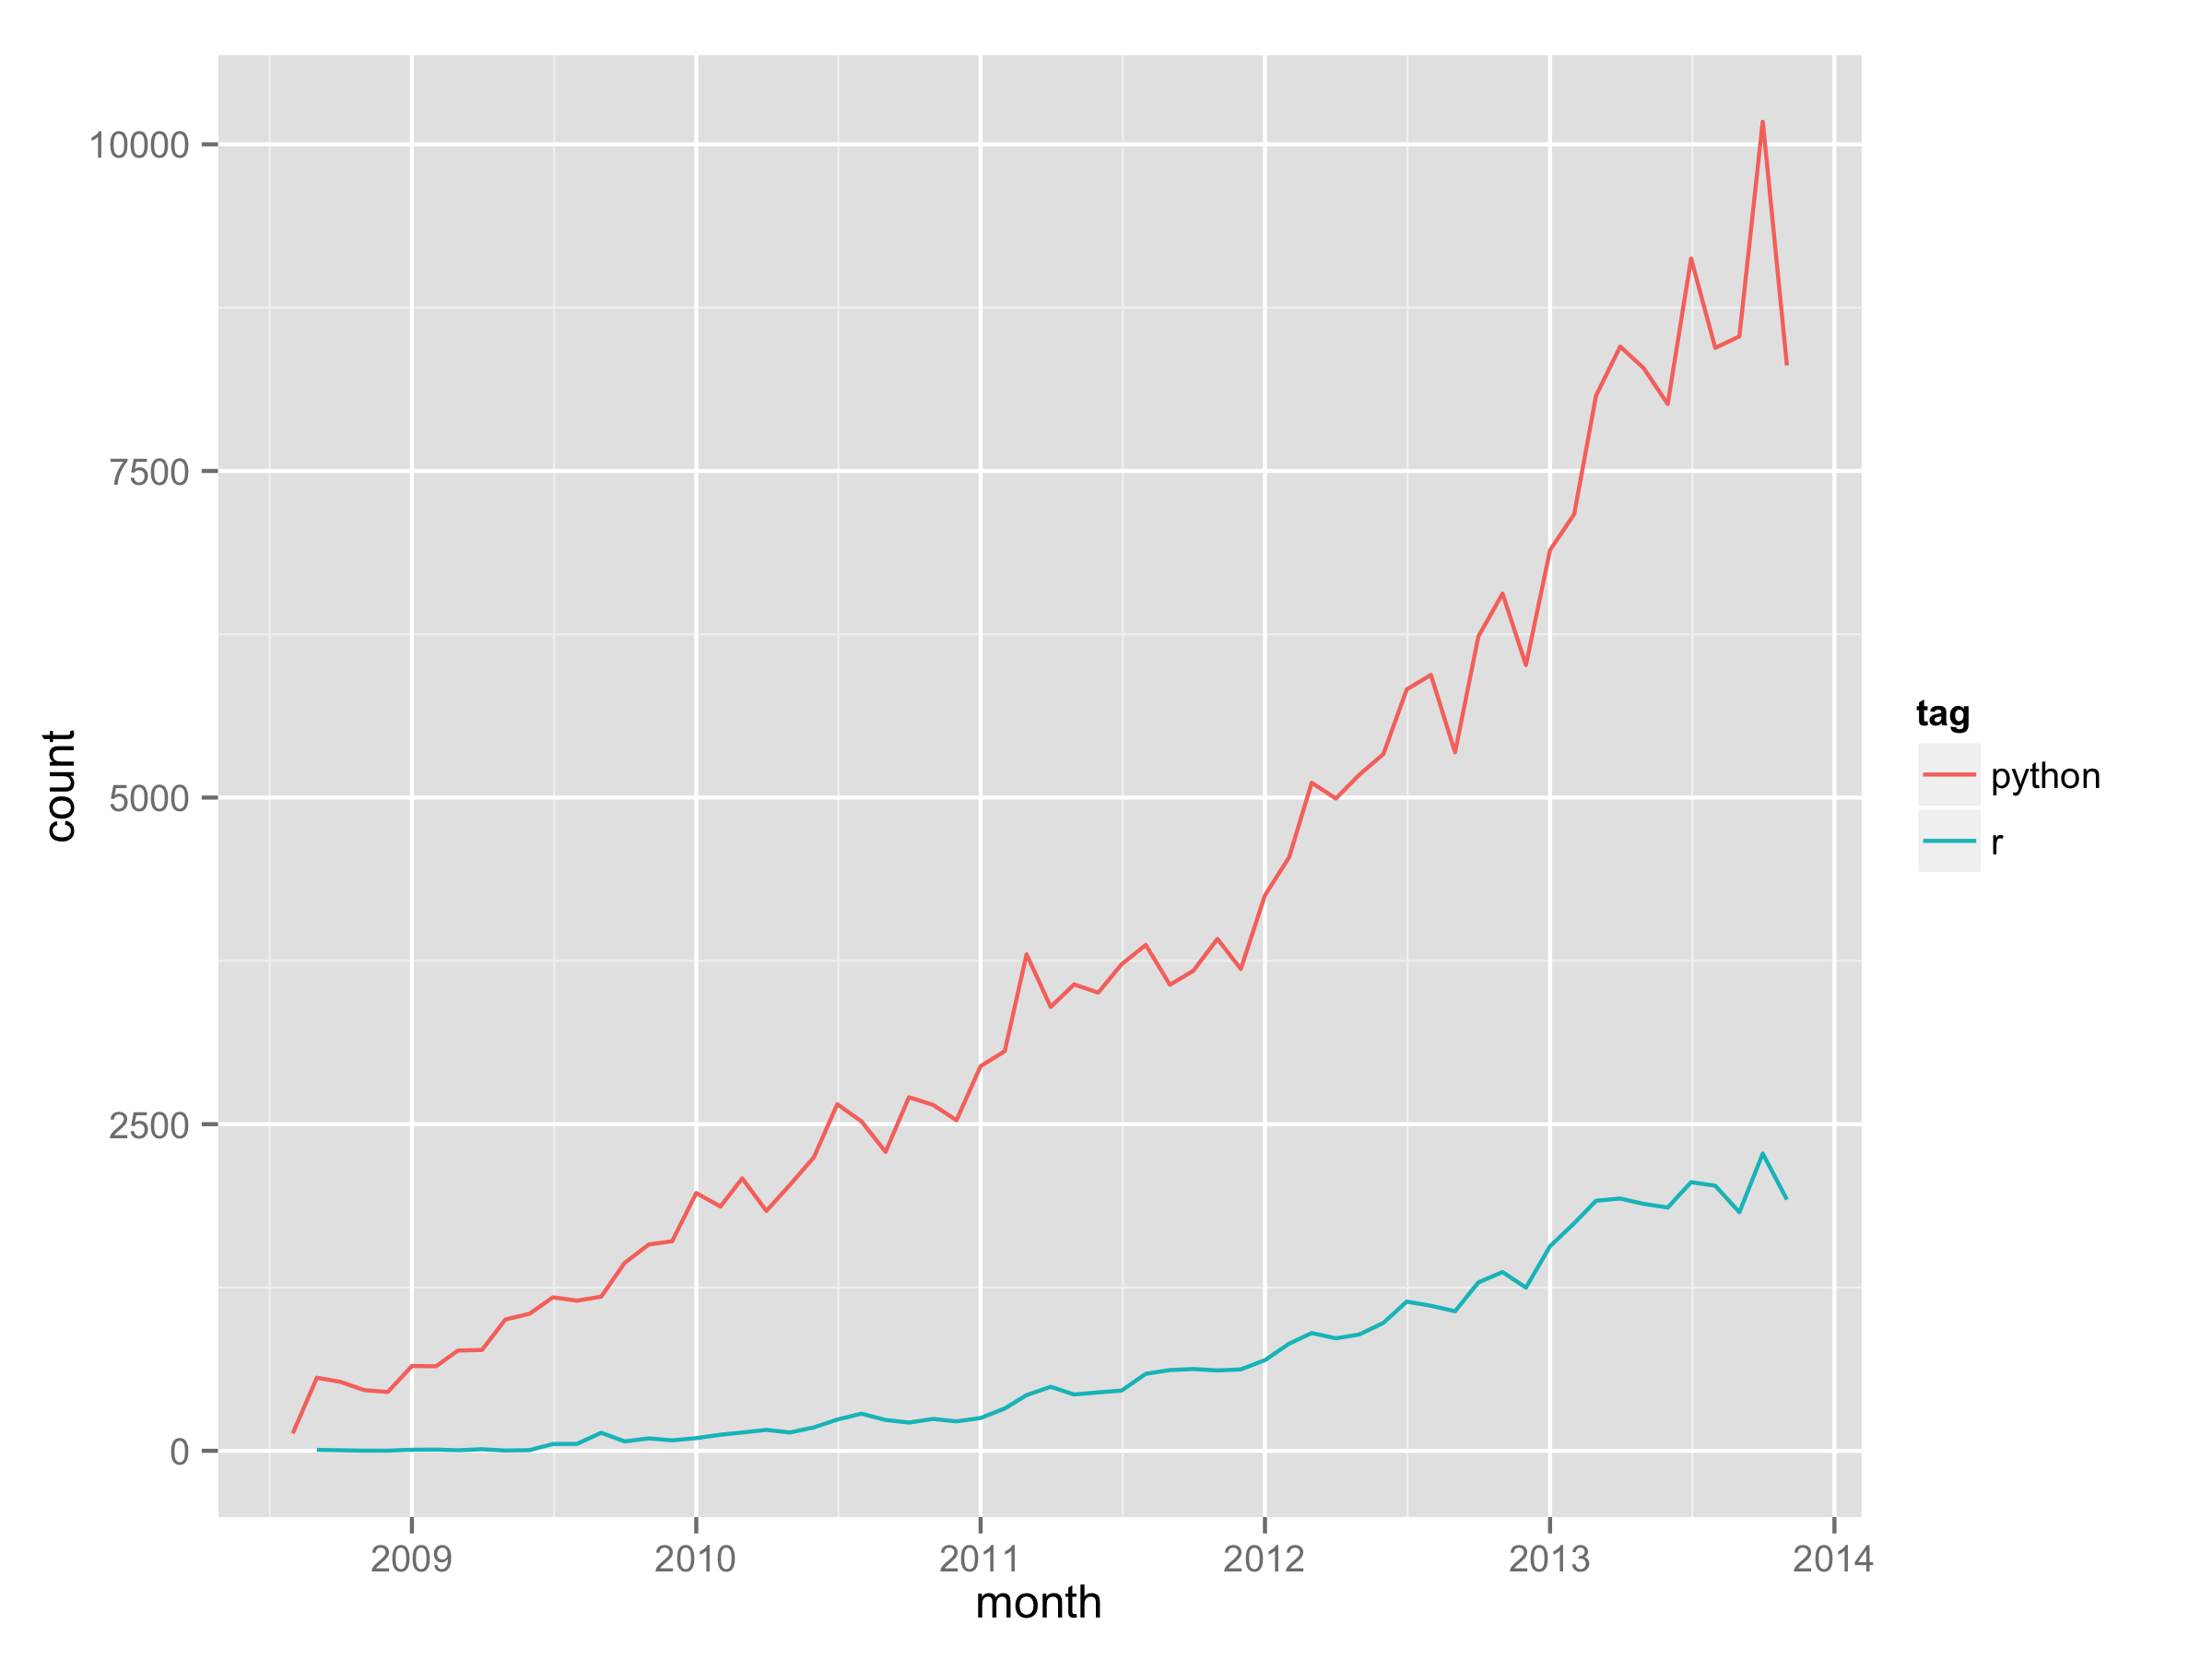 Growth of R for data science